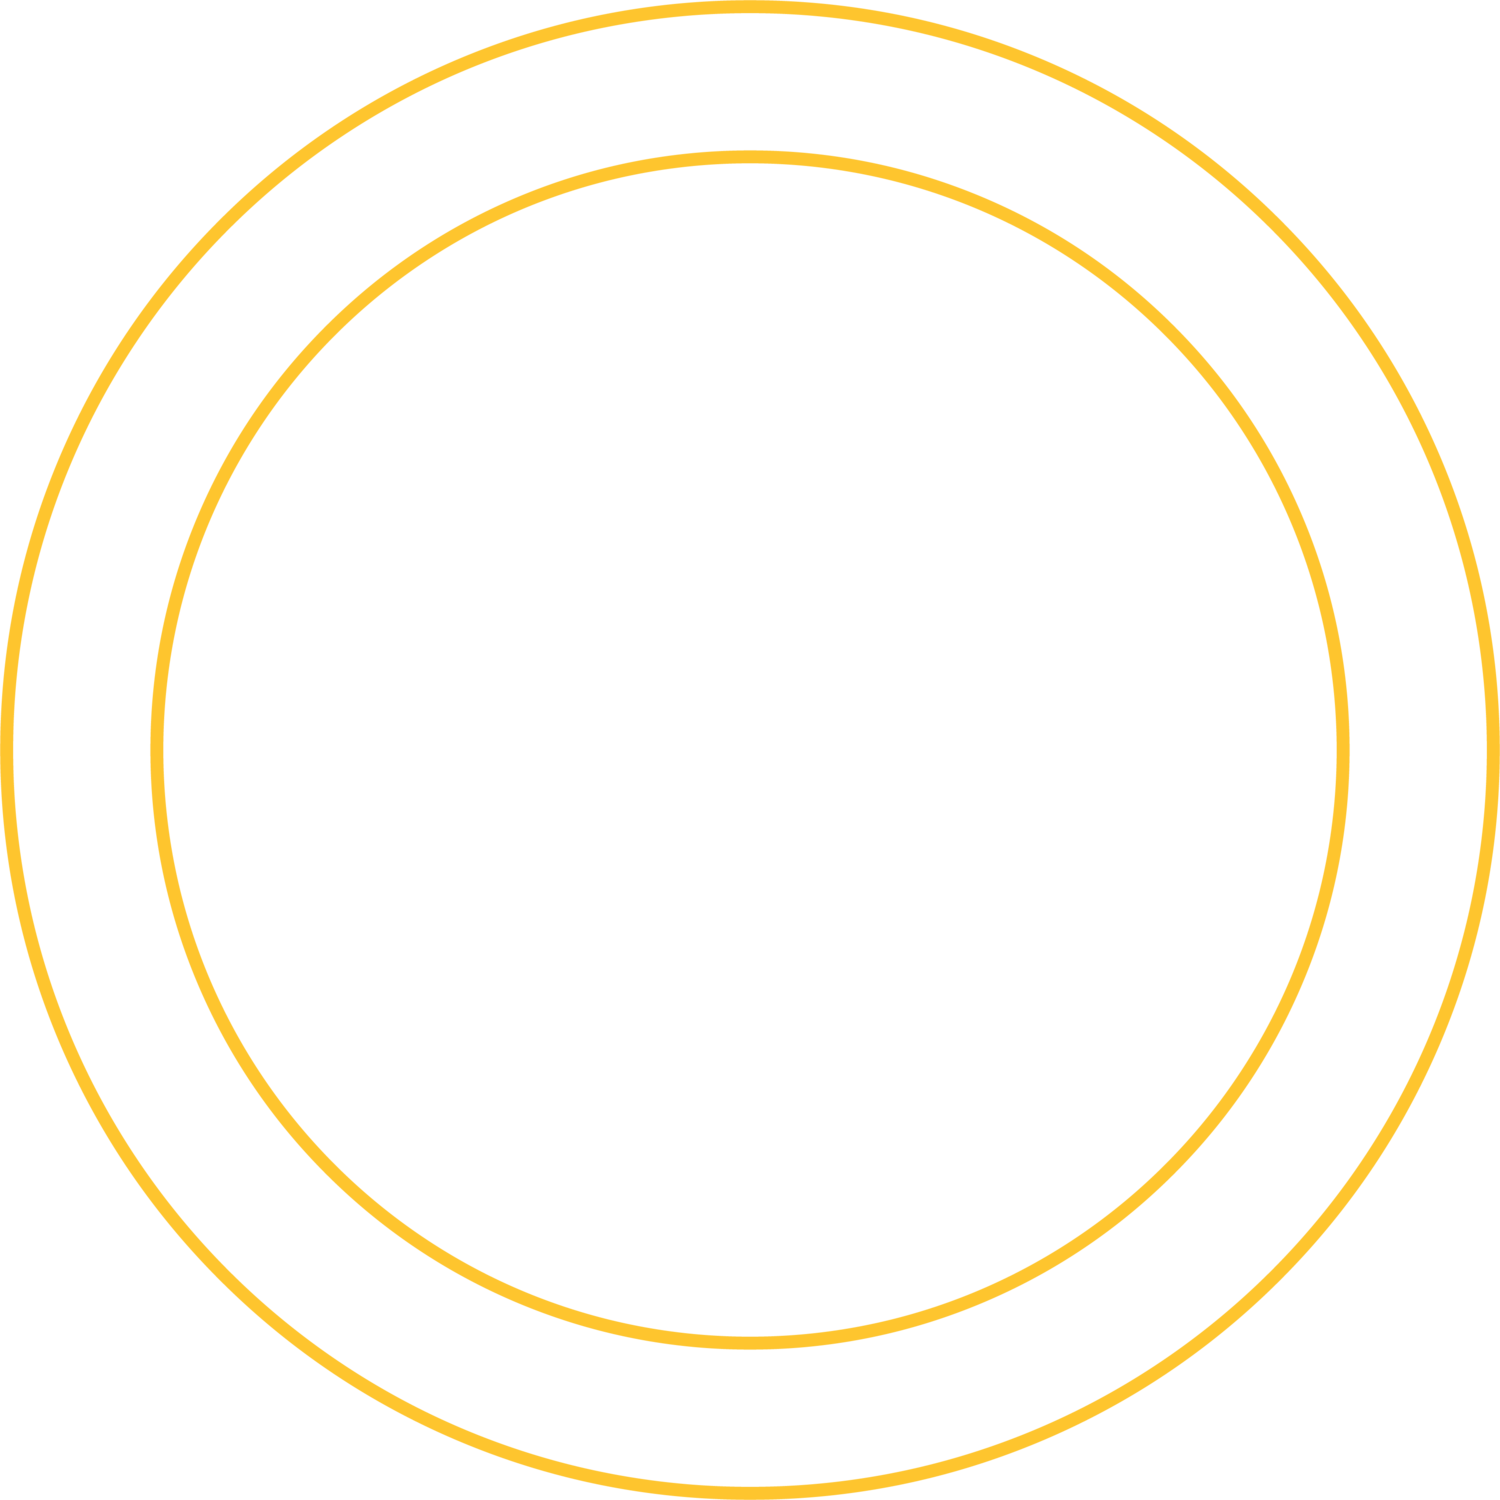 Energy Economic Development